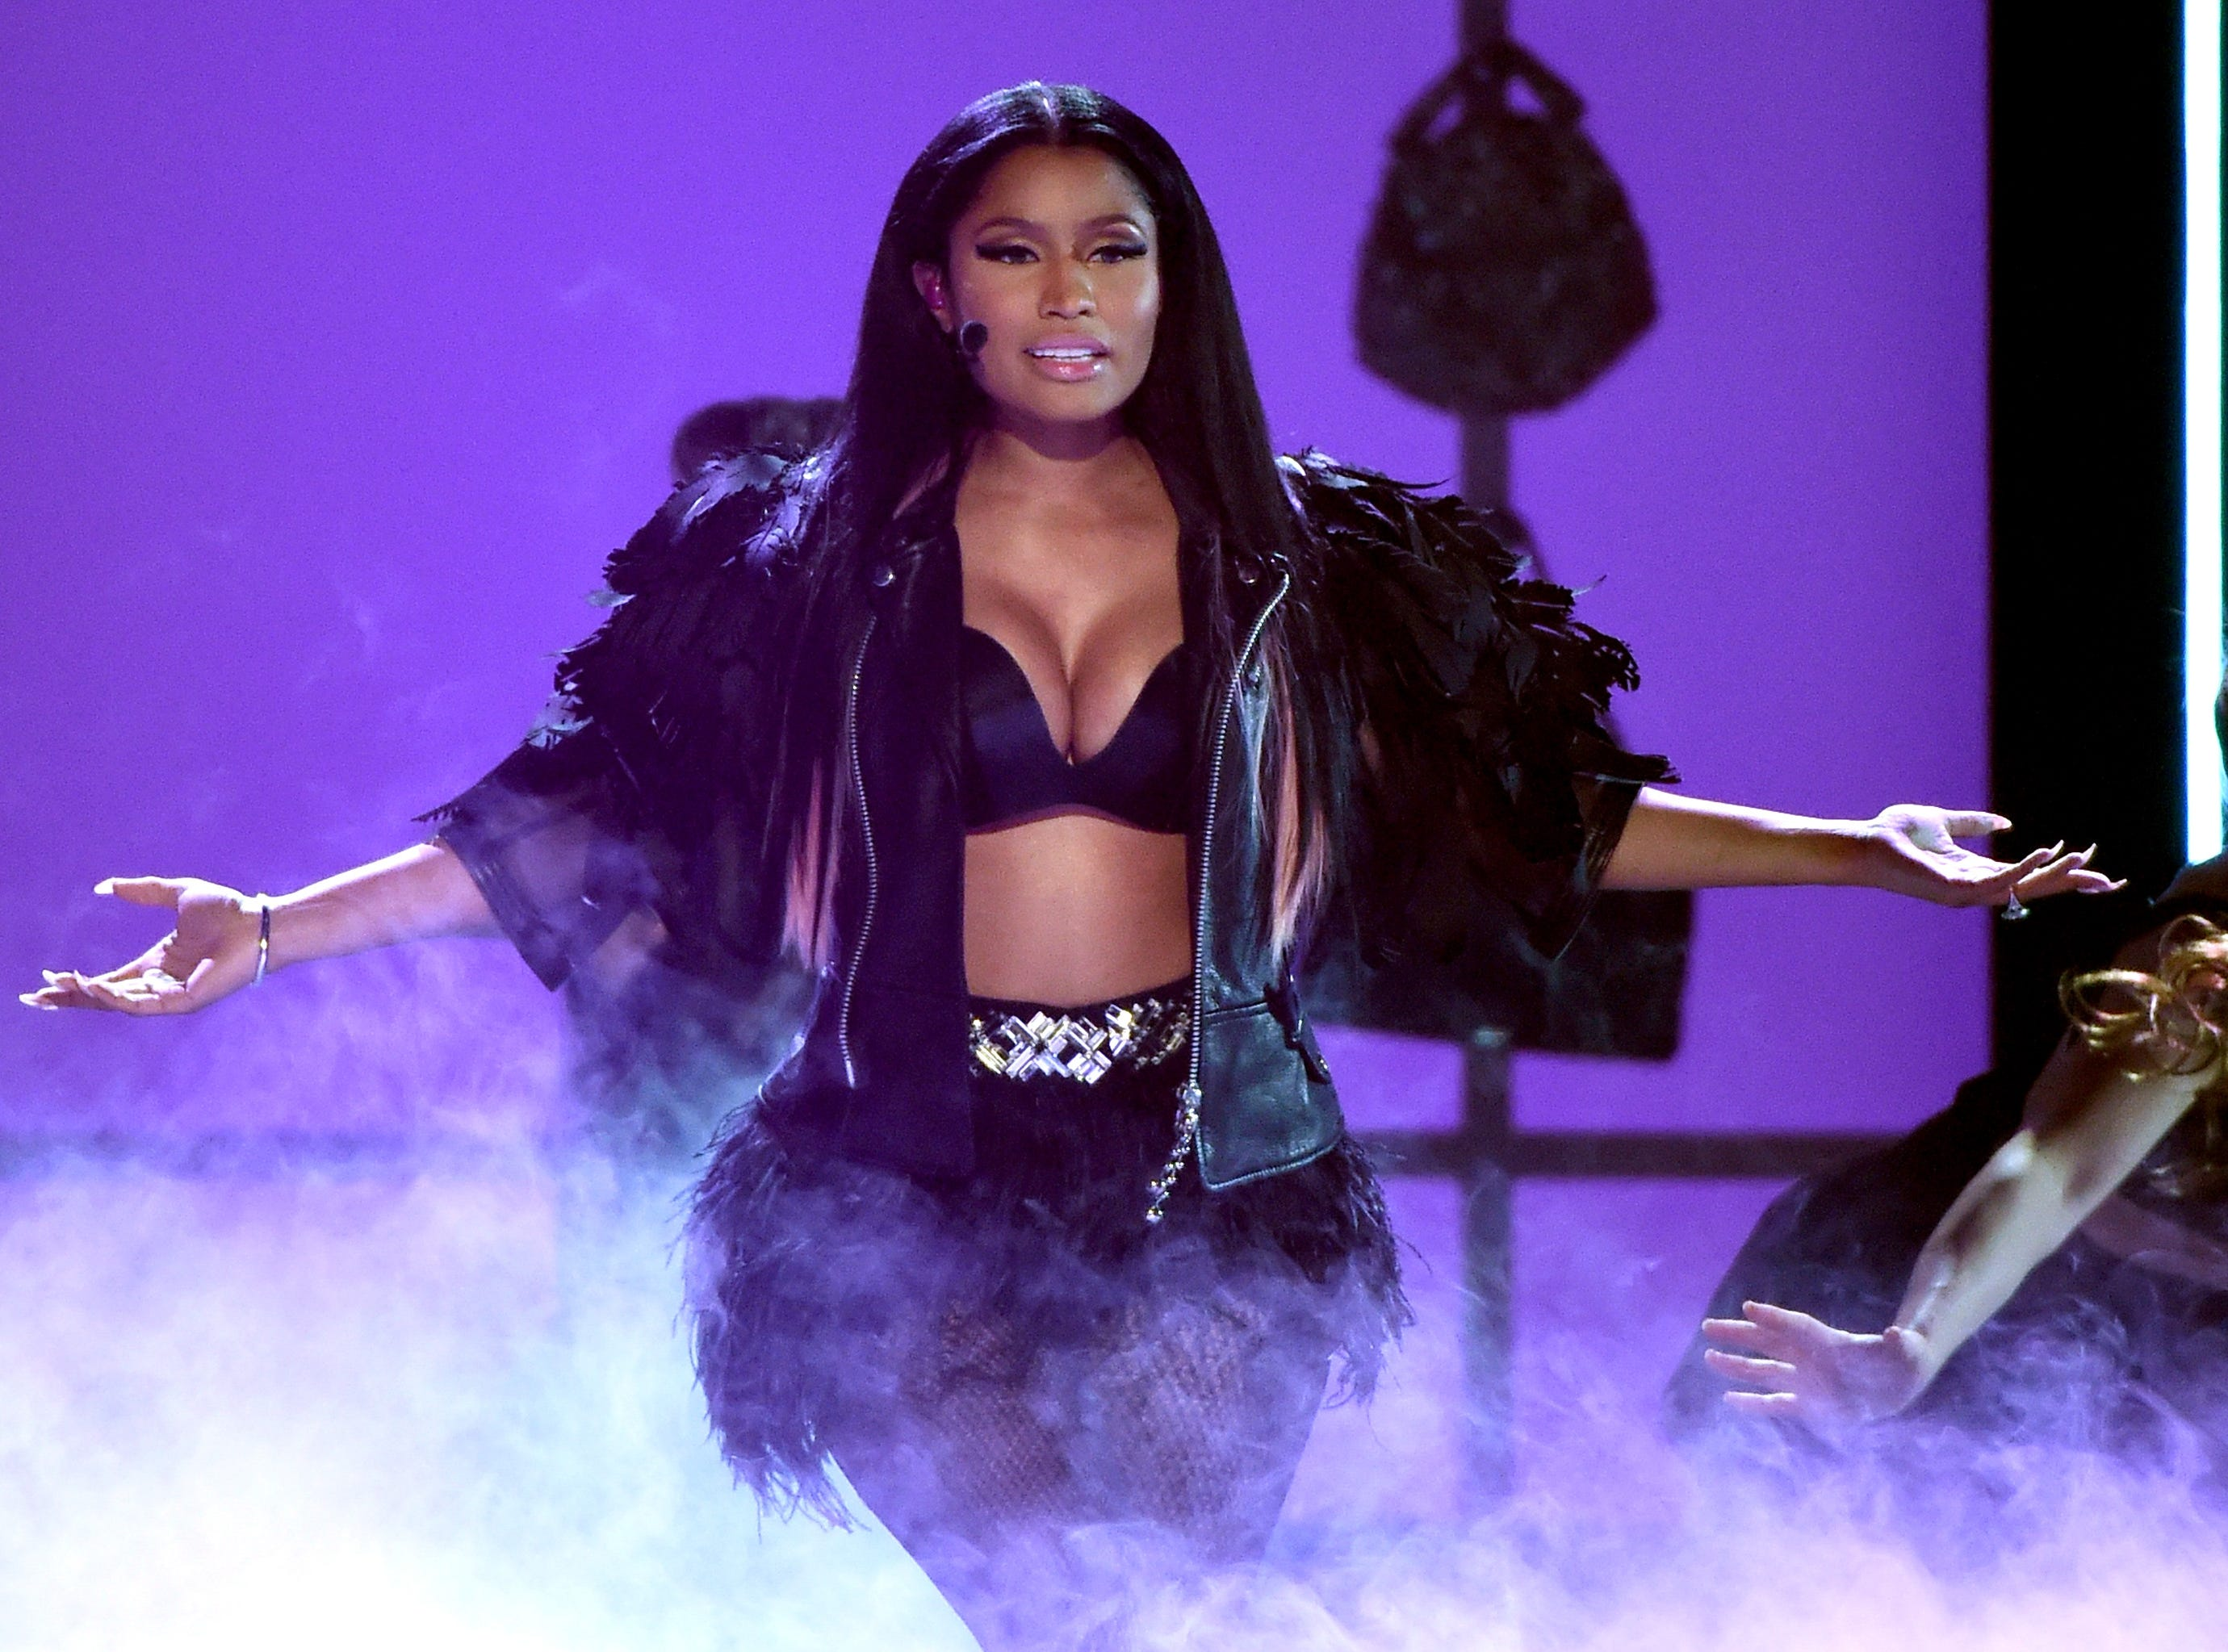 LAS VEGAS, NV - MAY 17:  Recording artist Nicki Minaj performs onstage during the 2015 Billboard Music Awards at MGM Grand Garden Arena on May 17, 2015 in Las Vegas, Nevada.  (Photo by Ethan Miller/Getty Images) ORG XMIT: 553594243 ORIG FILE ID: 473817102